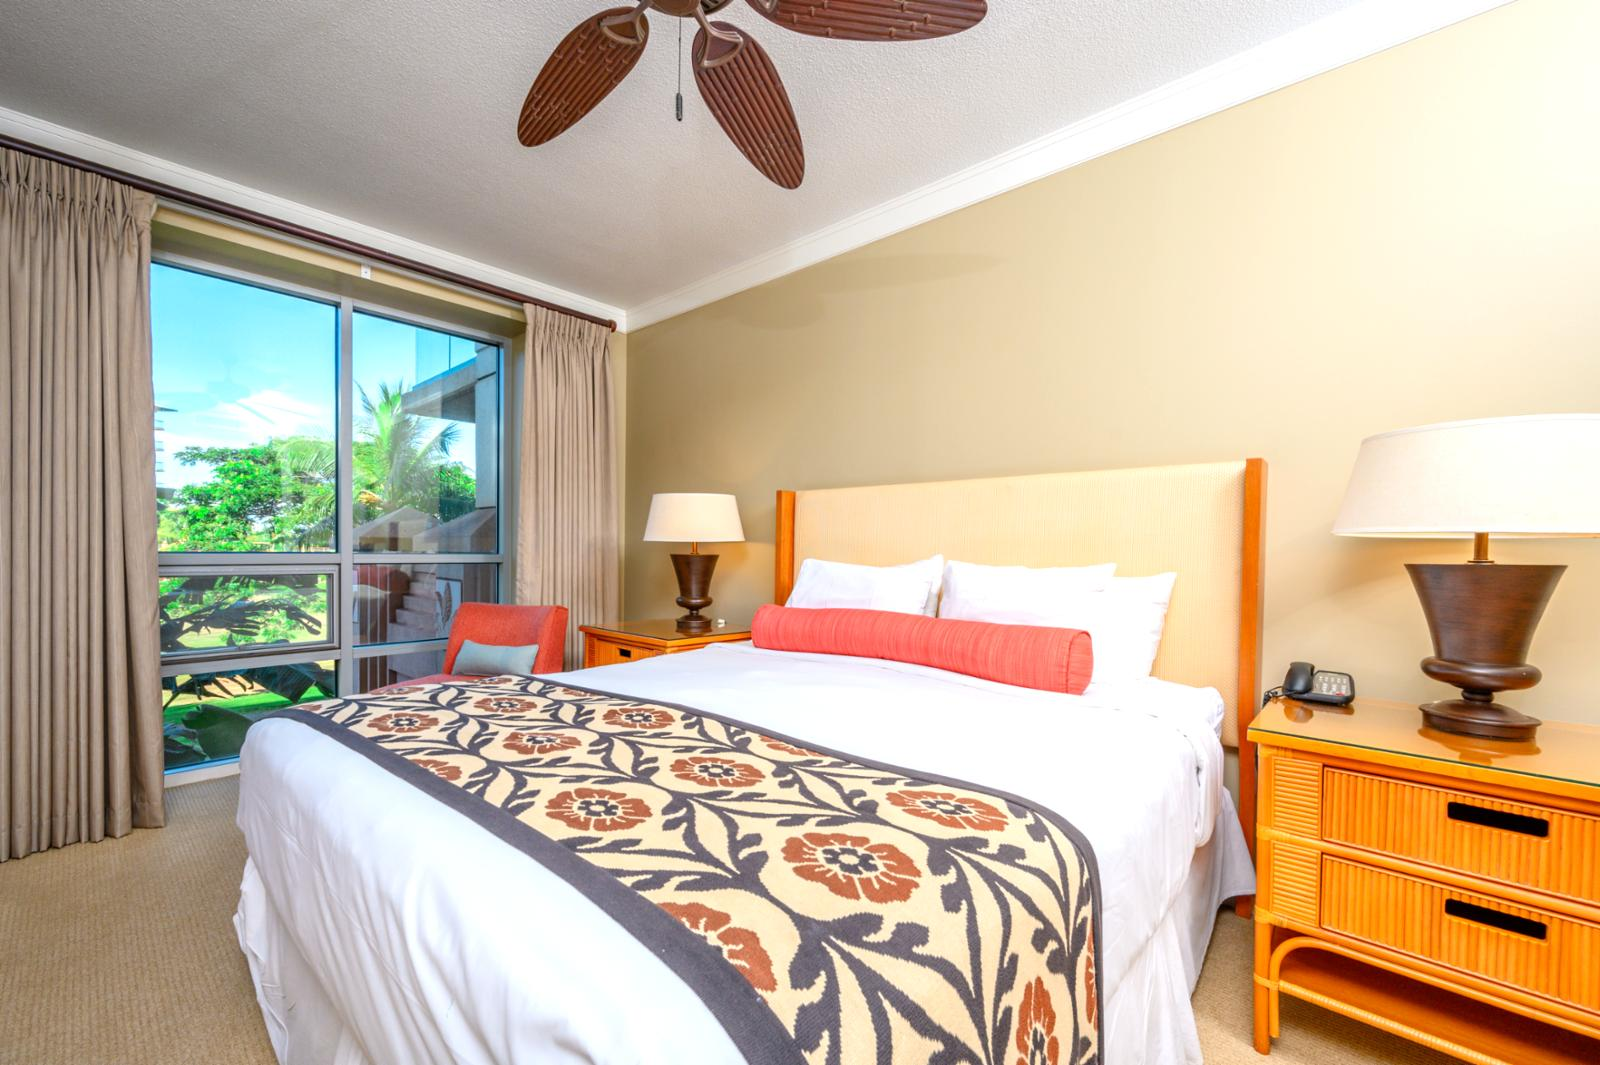 Large King size bed in the bedroom to add to the comfort of this Honua Kai unit.